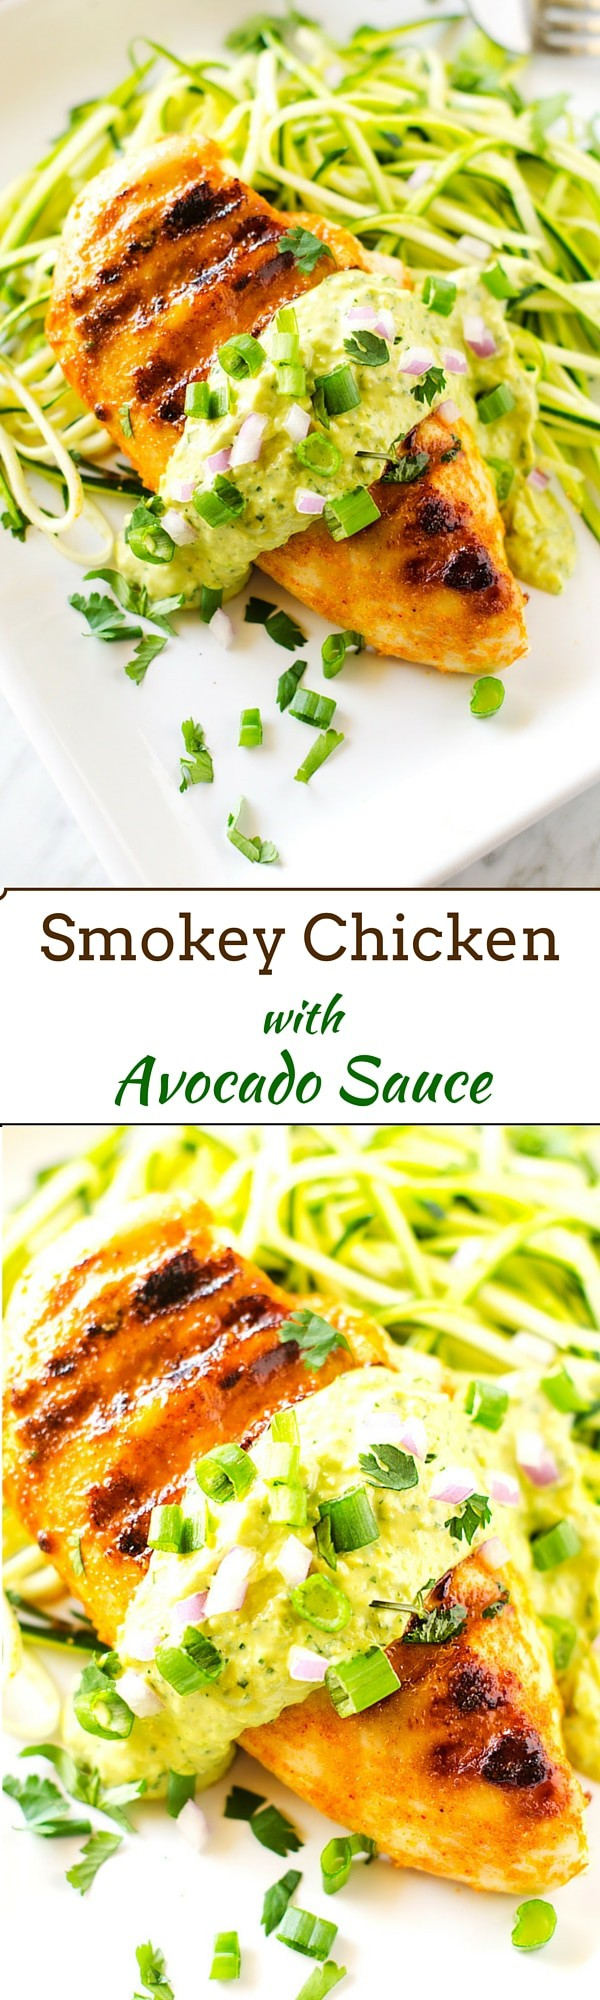 Smokey Chicken with Avocado Sauce - This easy to make dinner is gluten free and has a dairy free/ Paleo option!